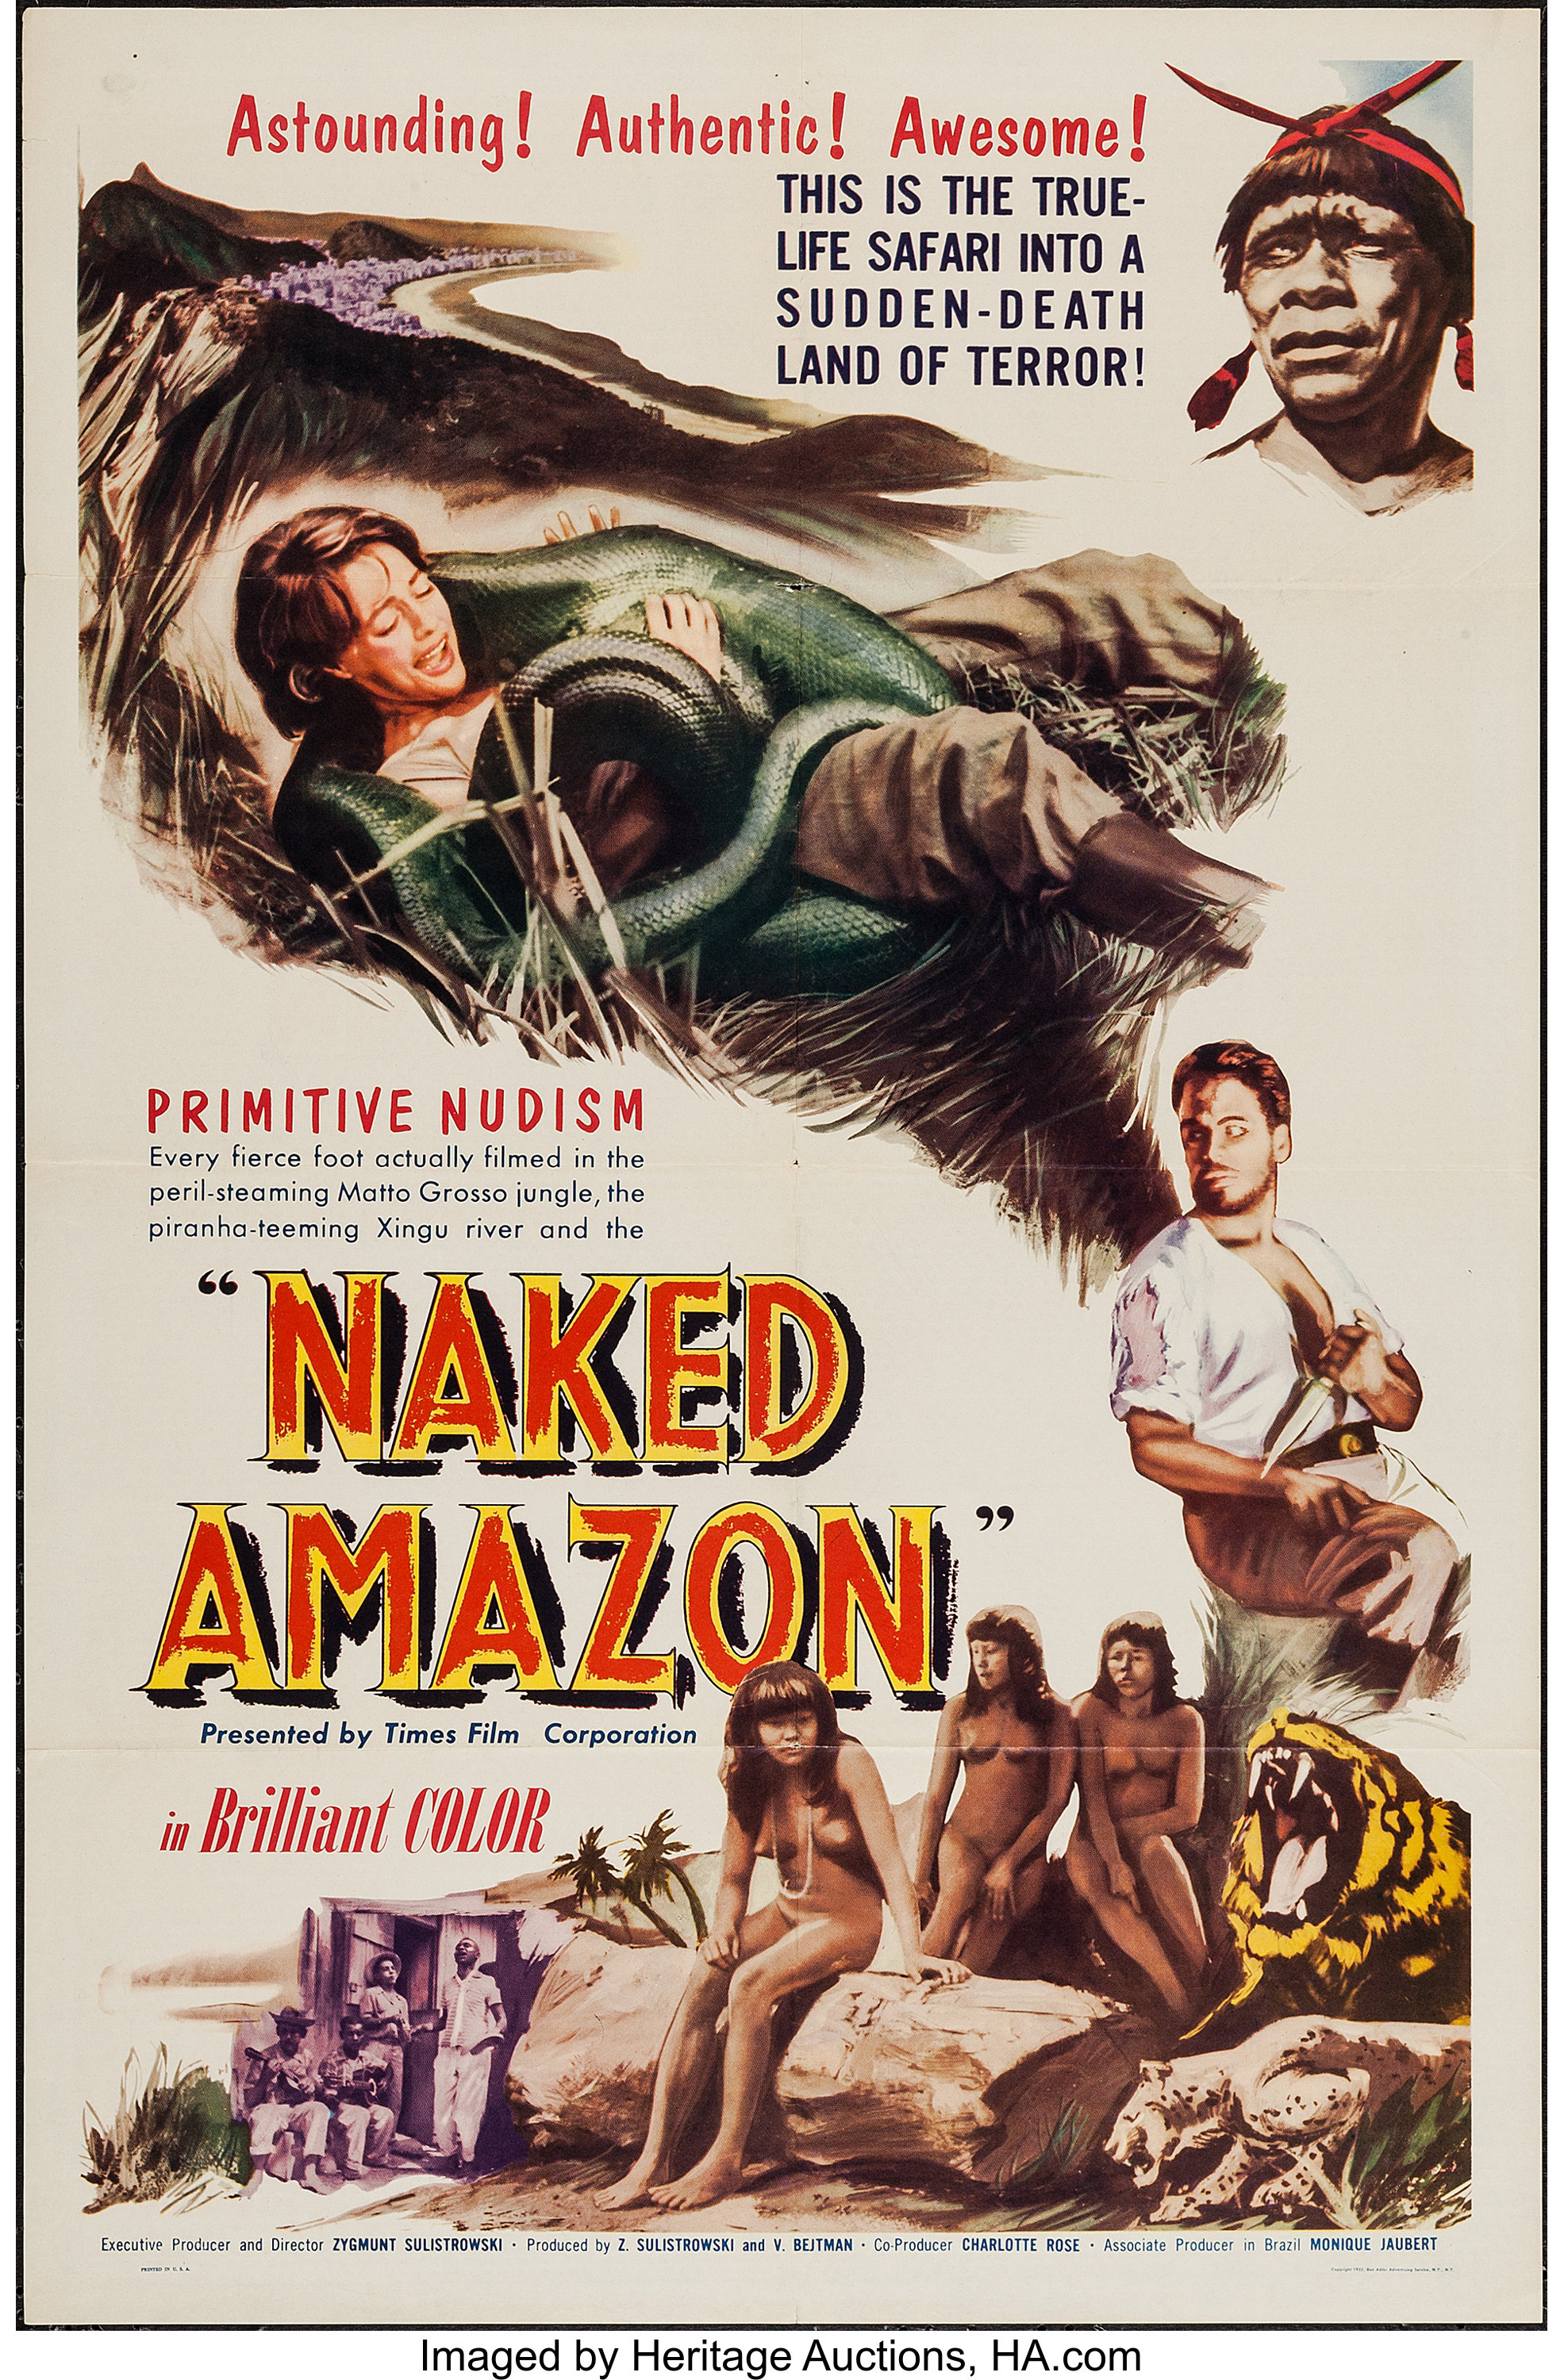 """Andrea True Nude naked amazon (times films corp., 1954). one sheet (27"""" x 41"""